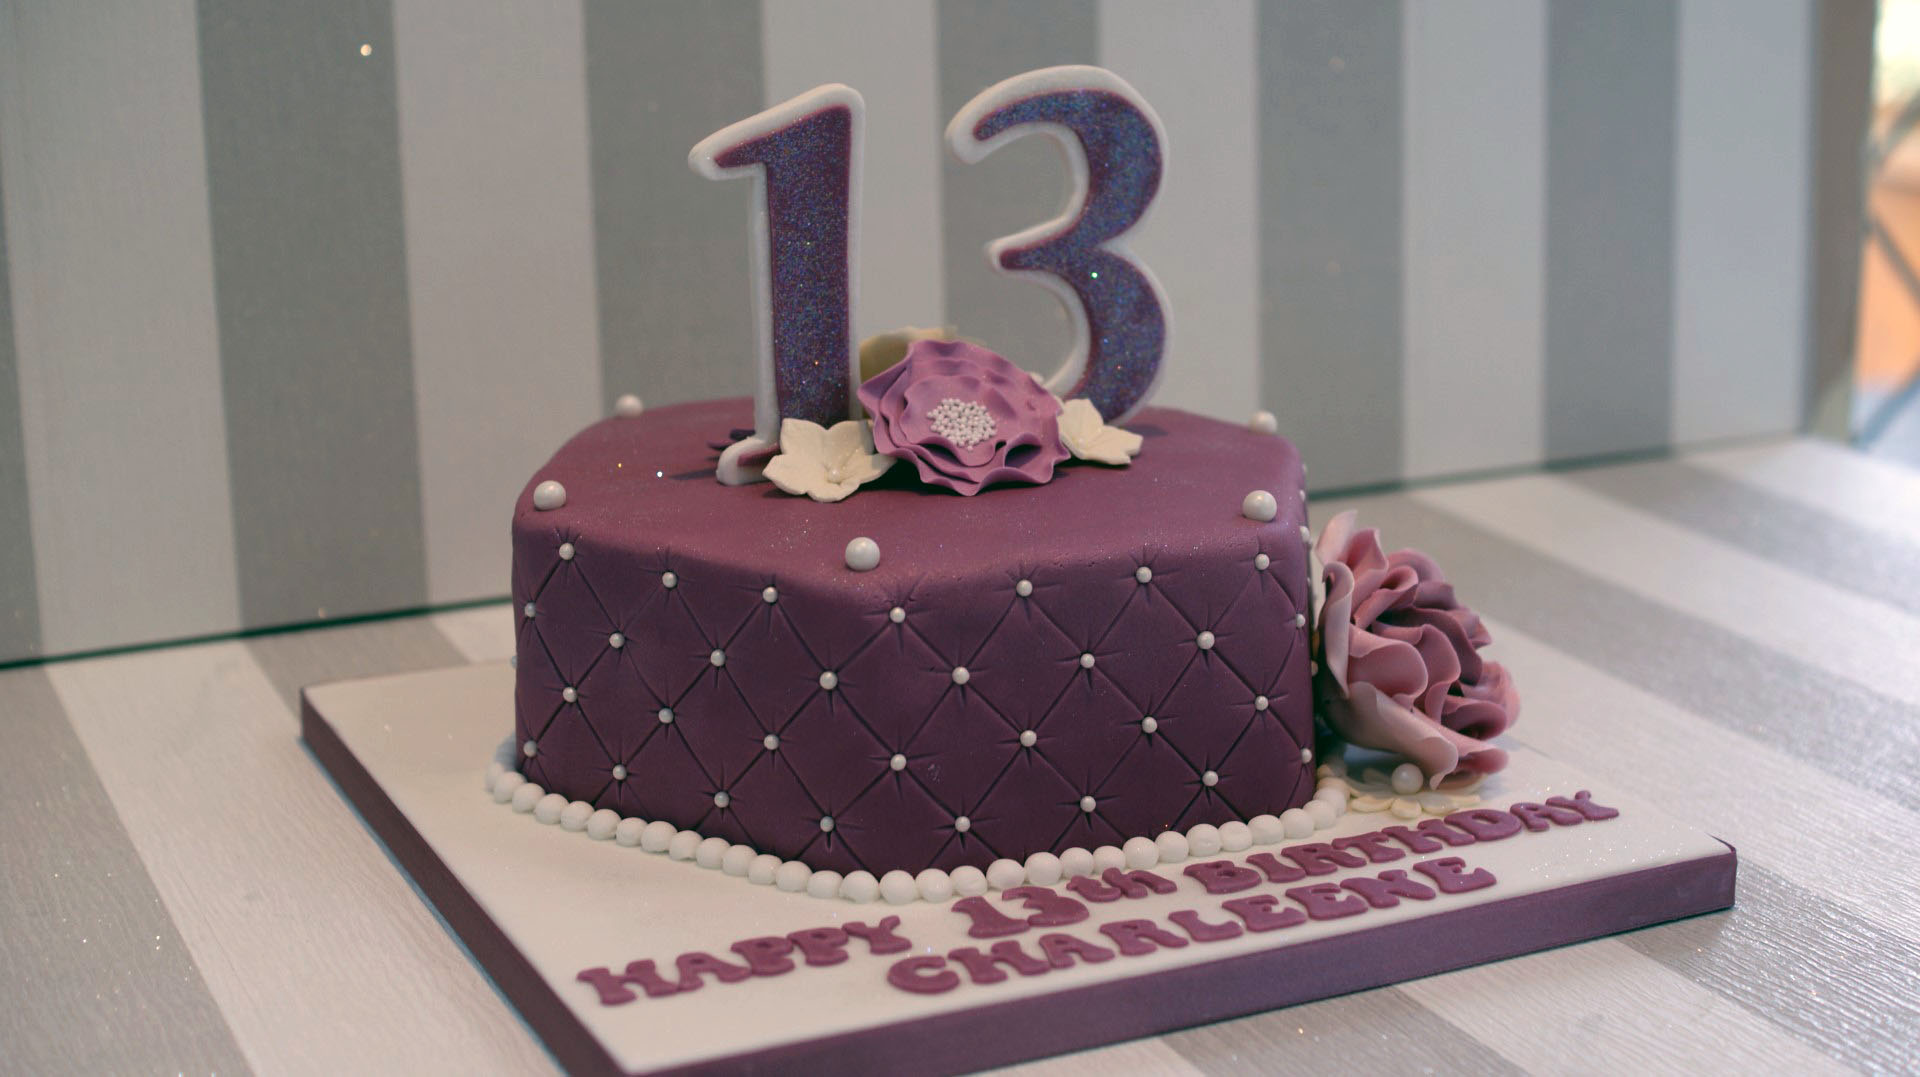 color combinations for birthday cakes ; 13-birthday-cake-pretty-13th-birthday-cake-bakealous-purple-and-white-color-combination-design-ideas-for-cake-birthday-2016